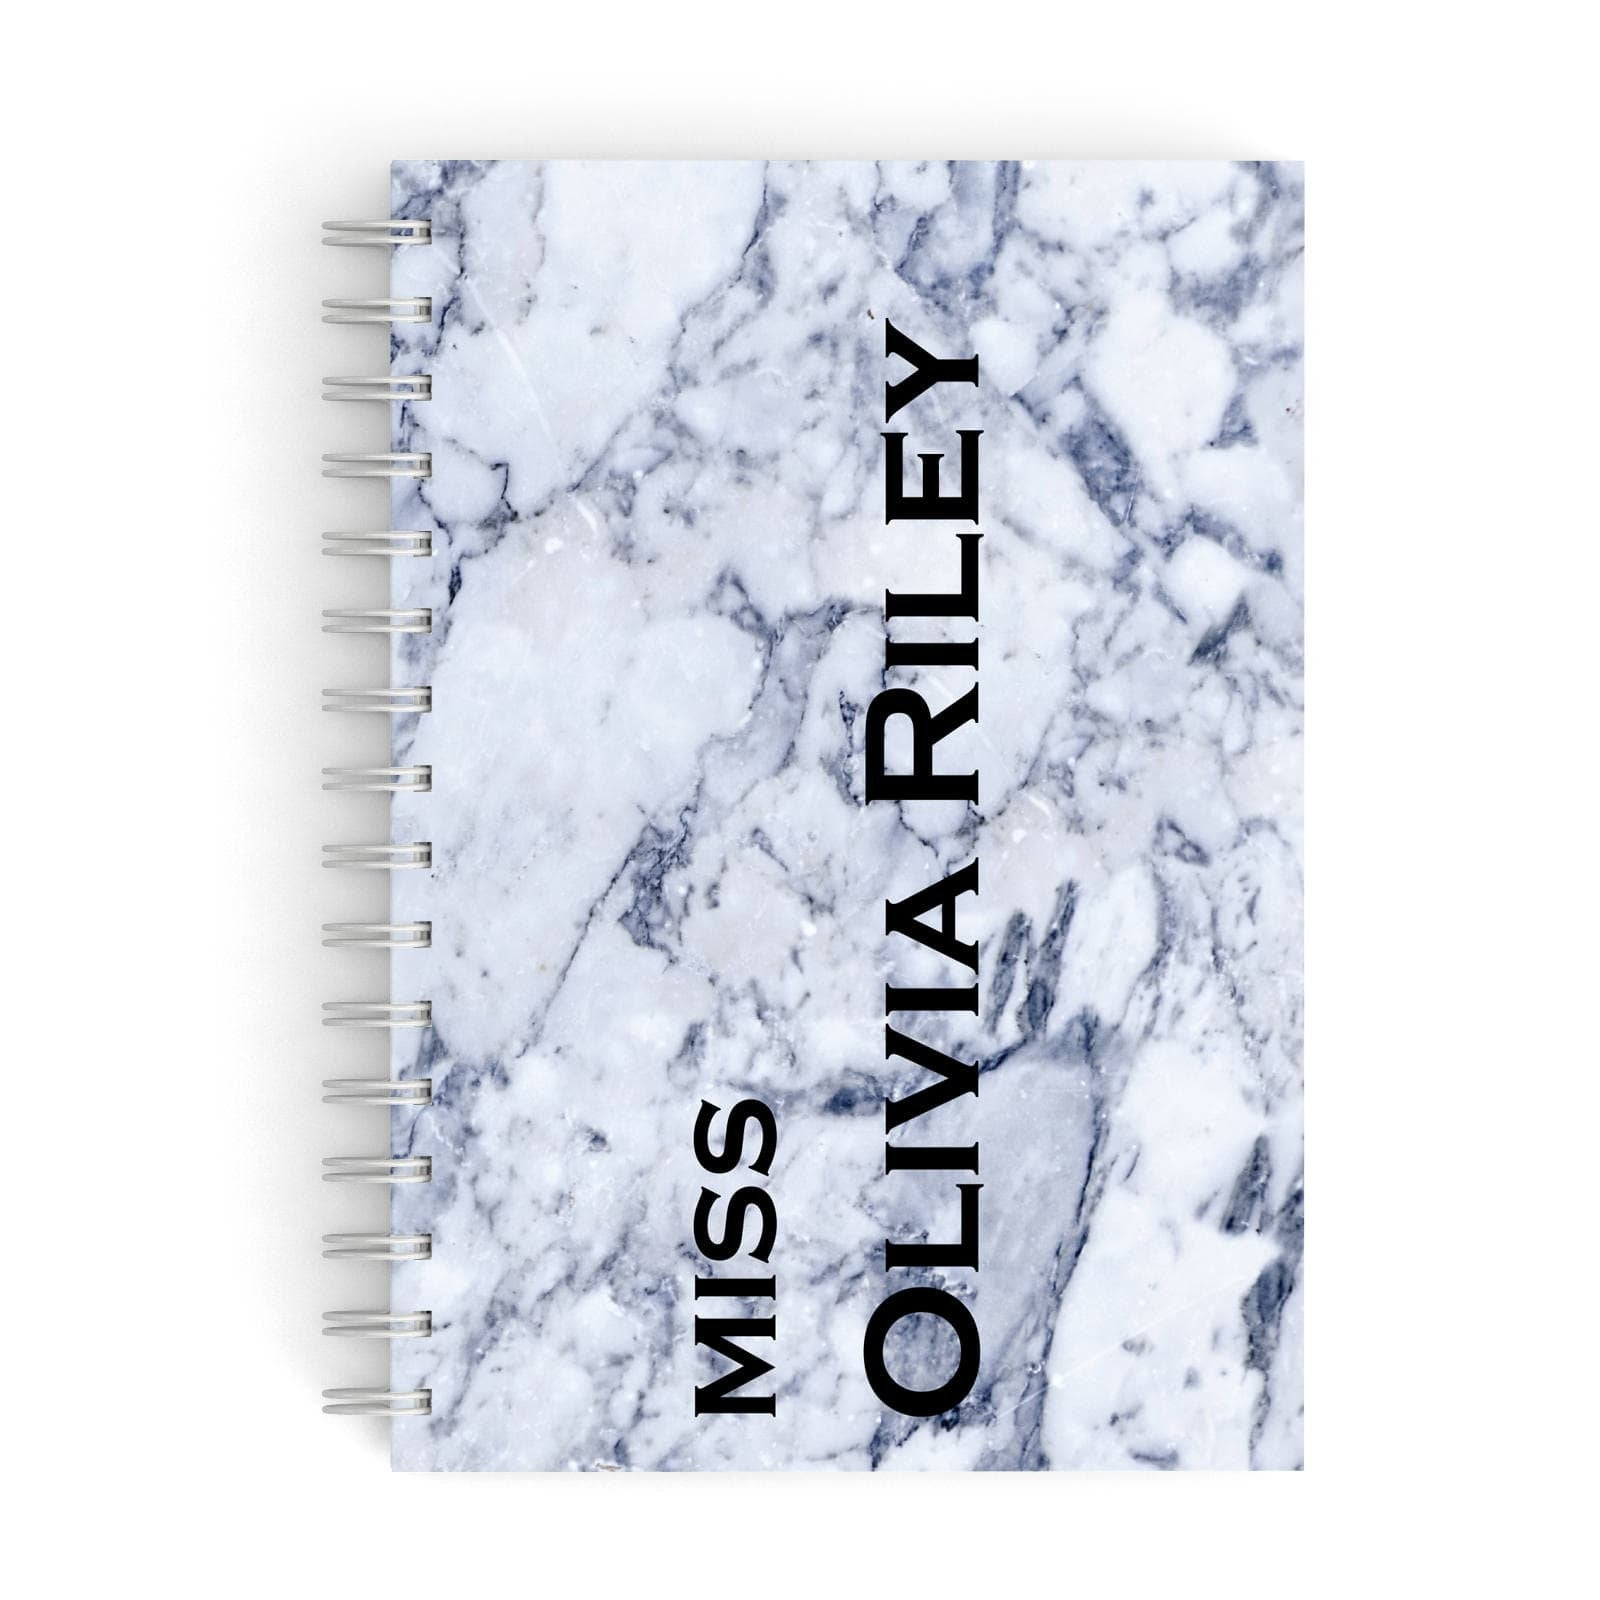 Full Name Grey Marble A5 Hardcover Notebook